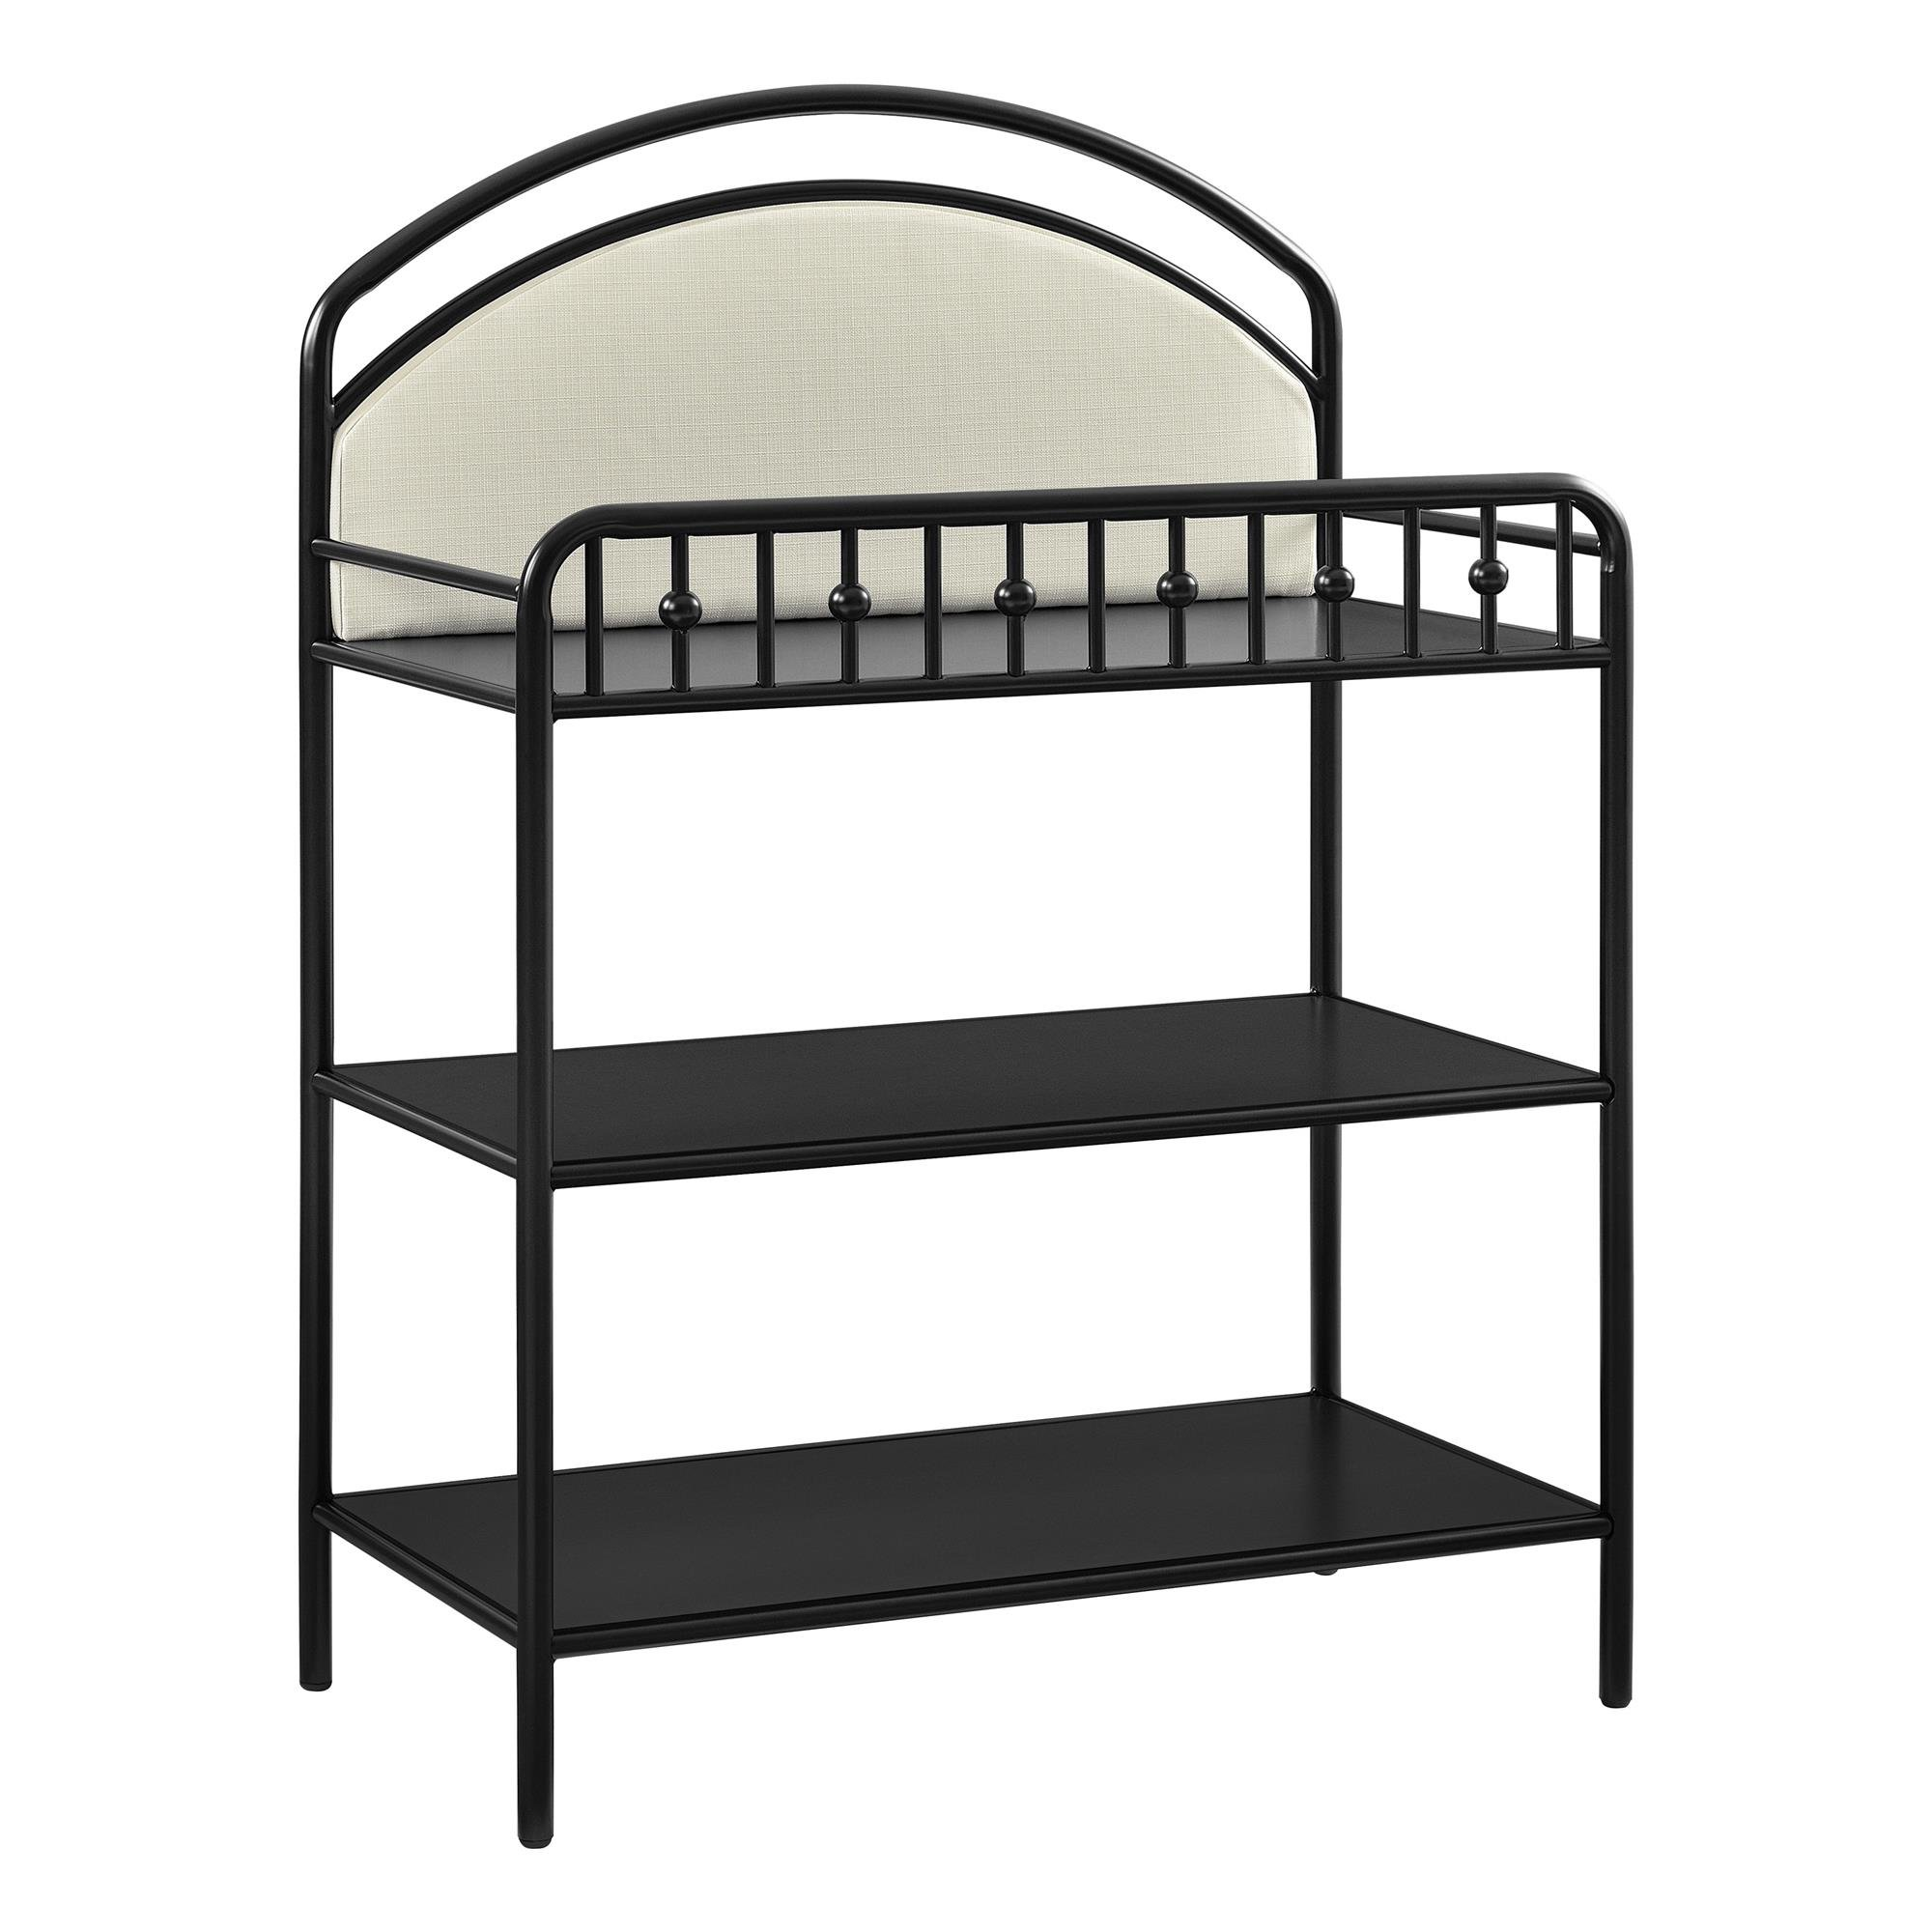 Little Seeds Rowan Valley Lotus Upholstered Metal Changing Table, Black